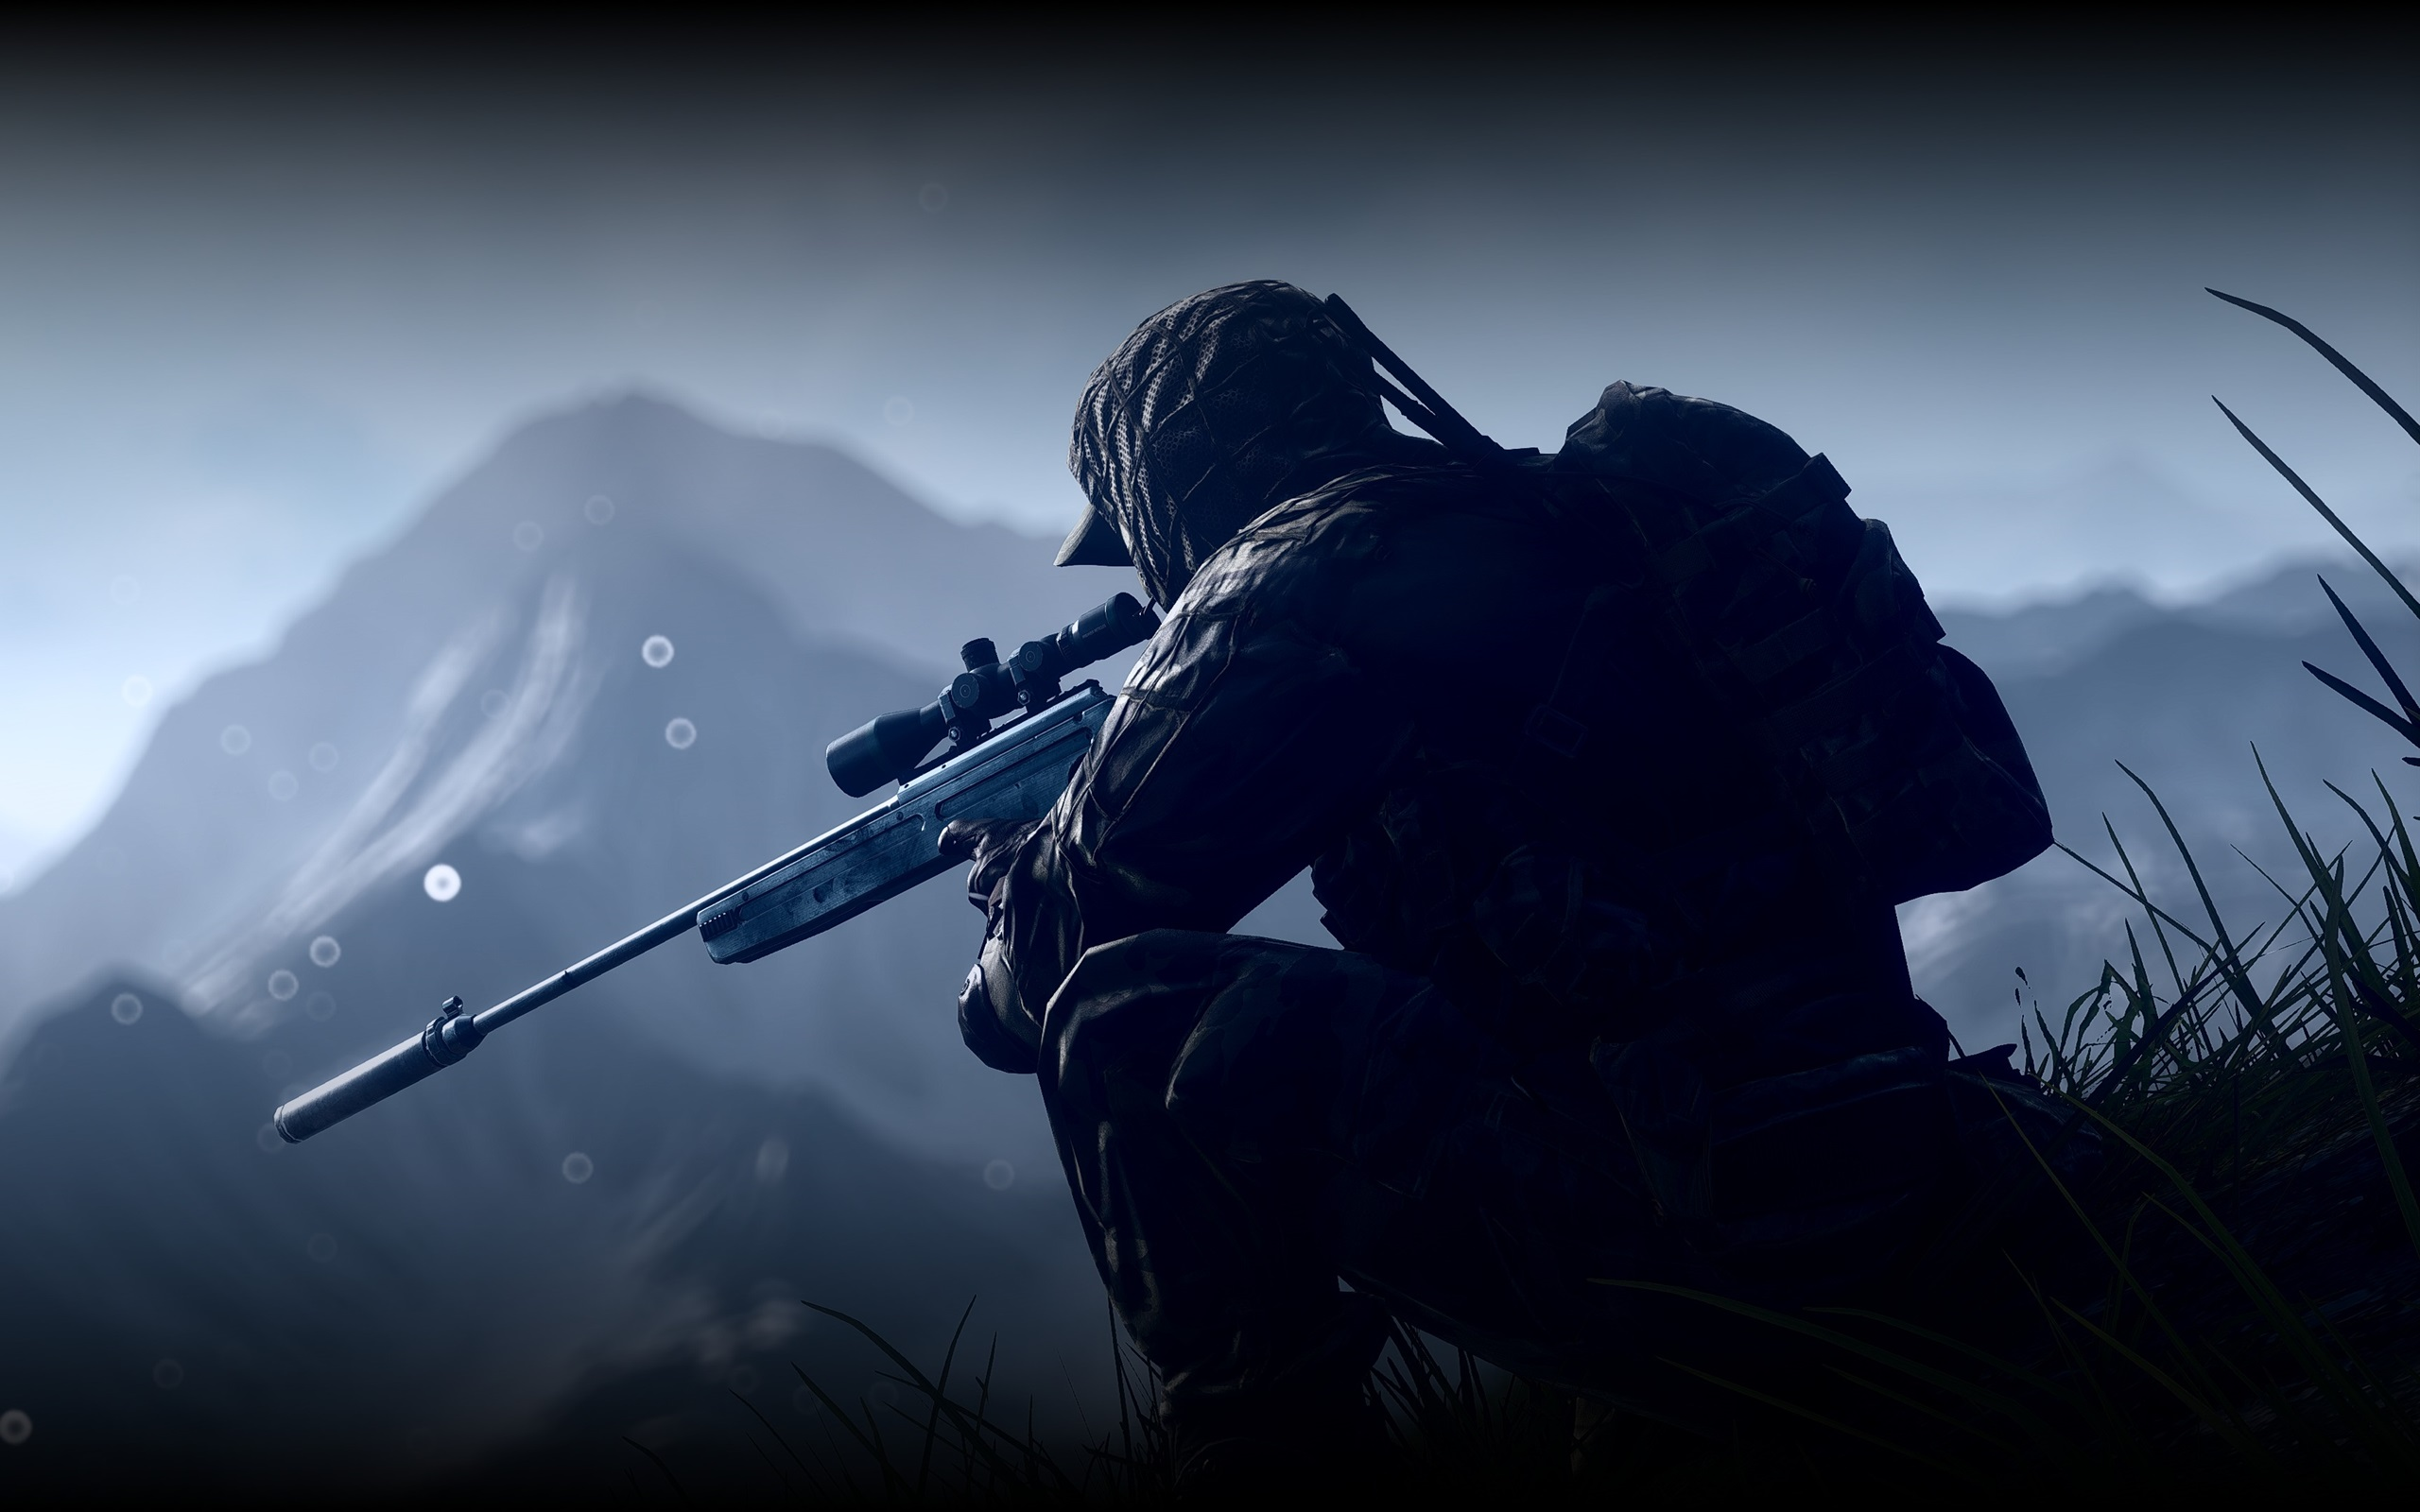 Wallpaper Battlefield 4 Soldier Sniper 3840x2160 UHD 4K Picture Image